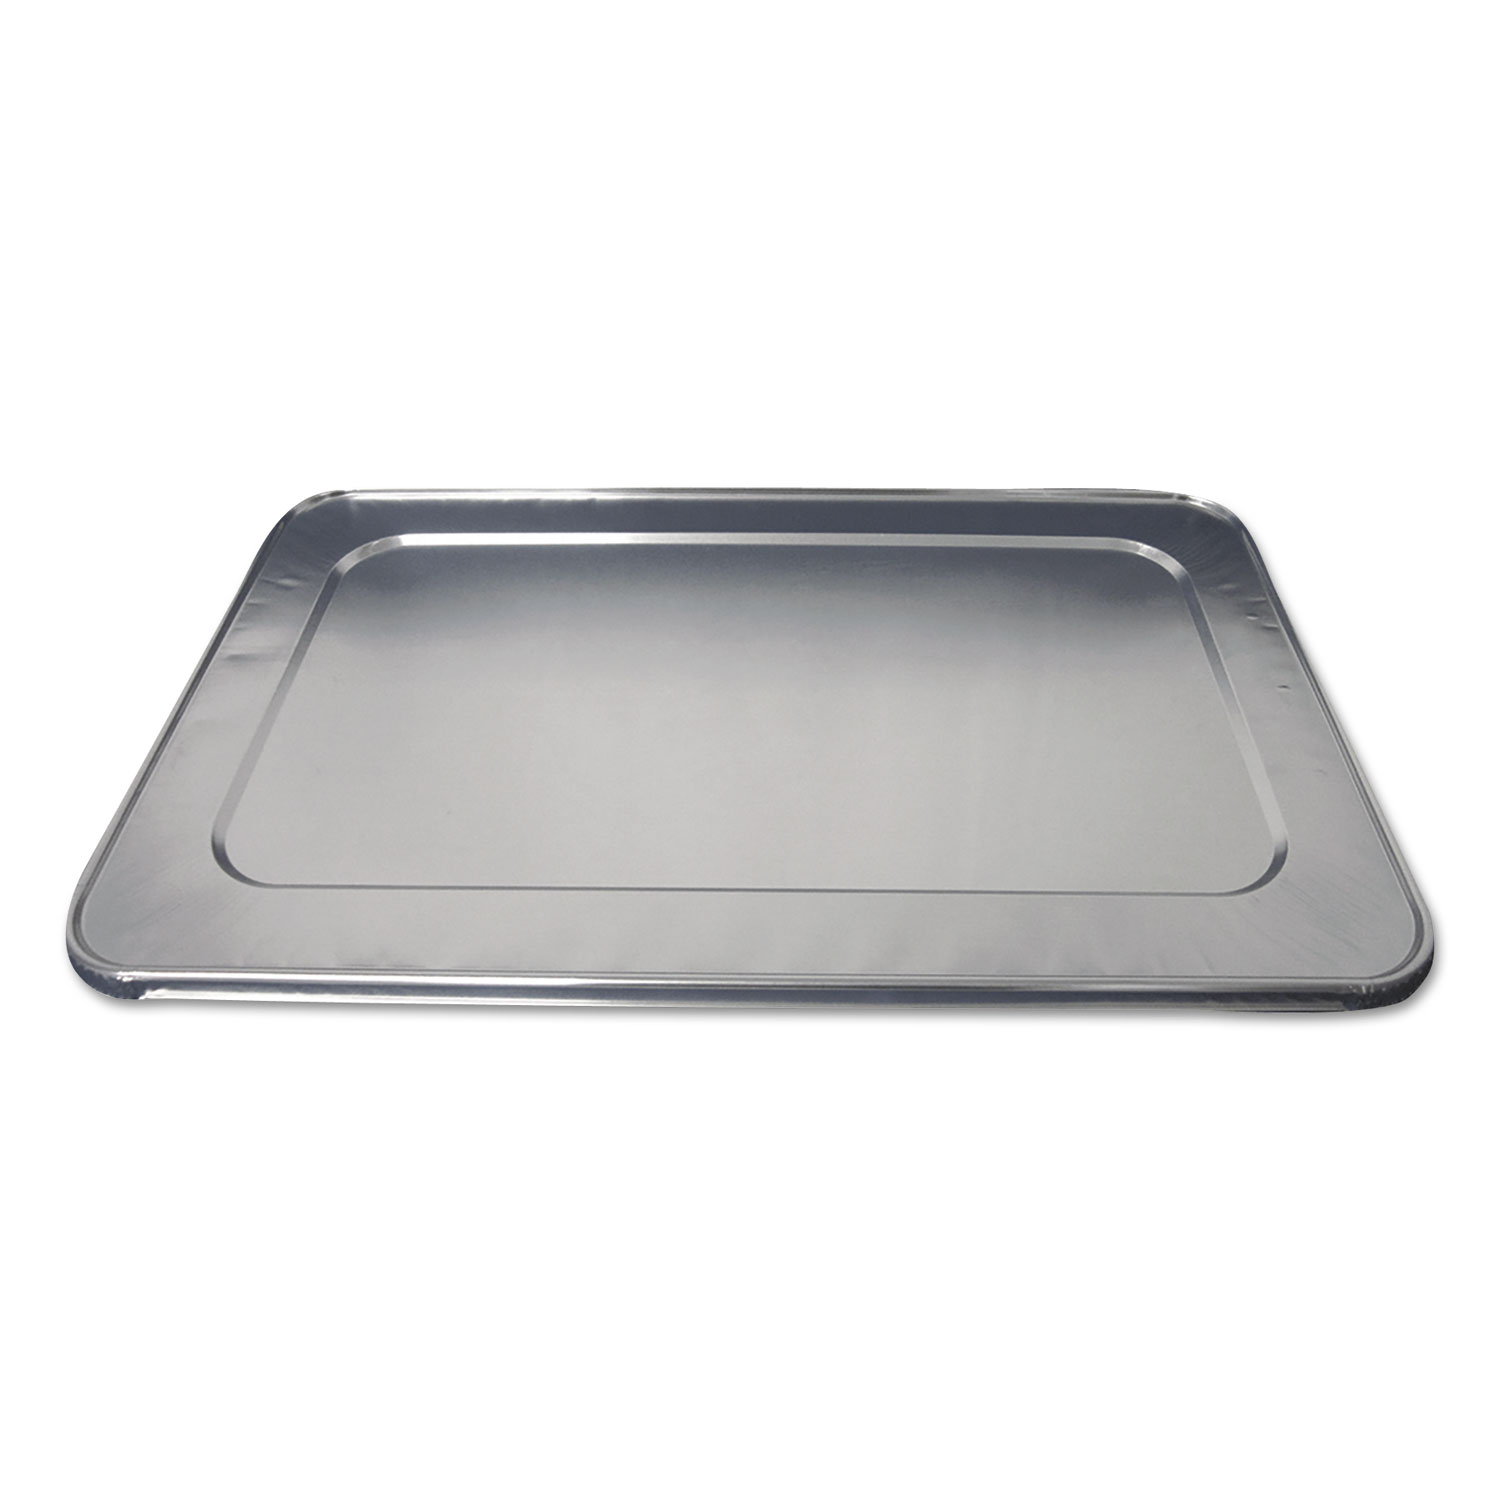 Aluminum Steam Table Lids for Heavy-Duty Full Size Pan, 50/Carton